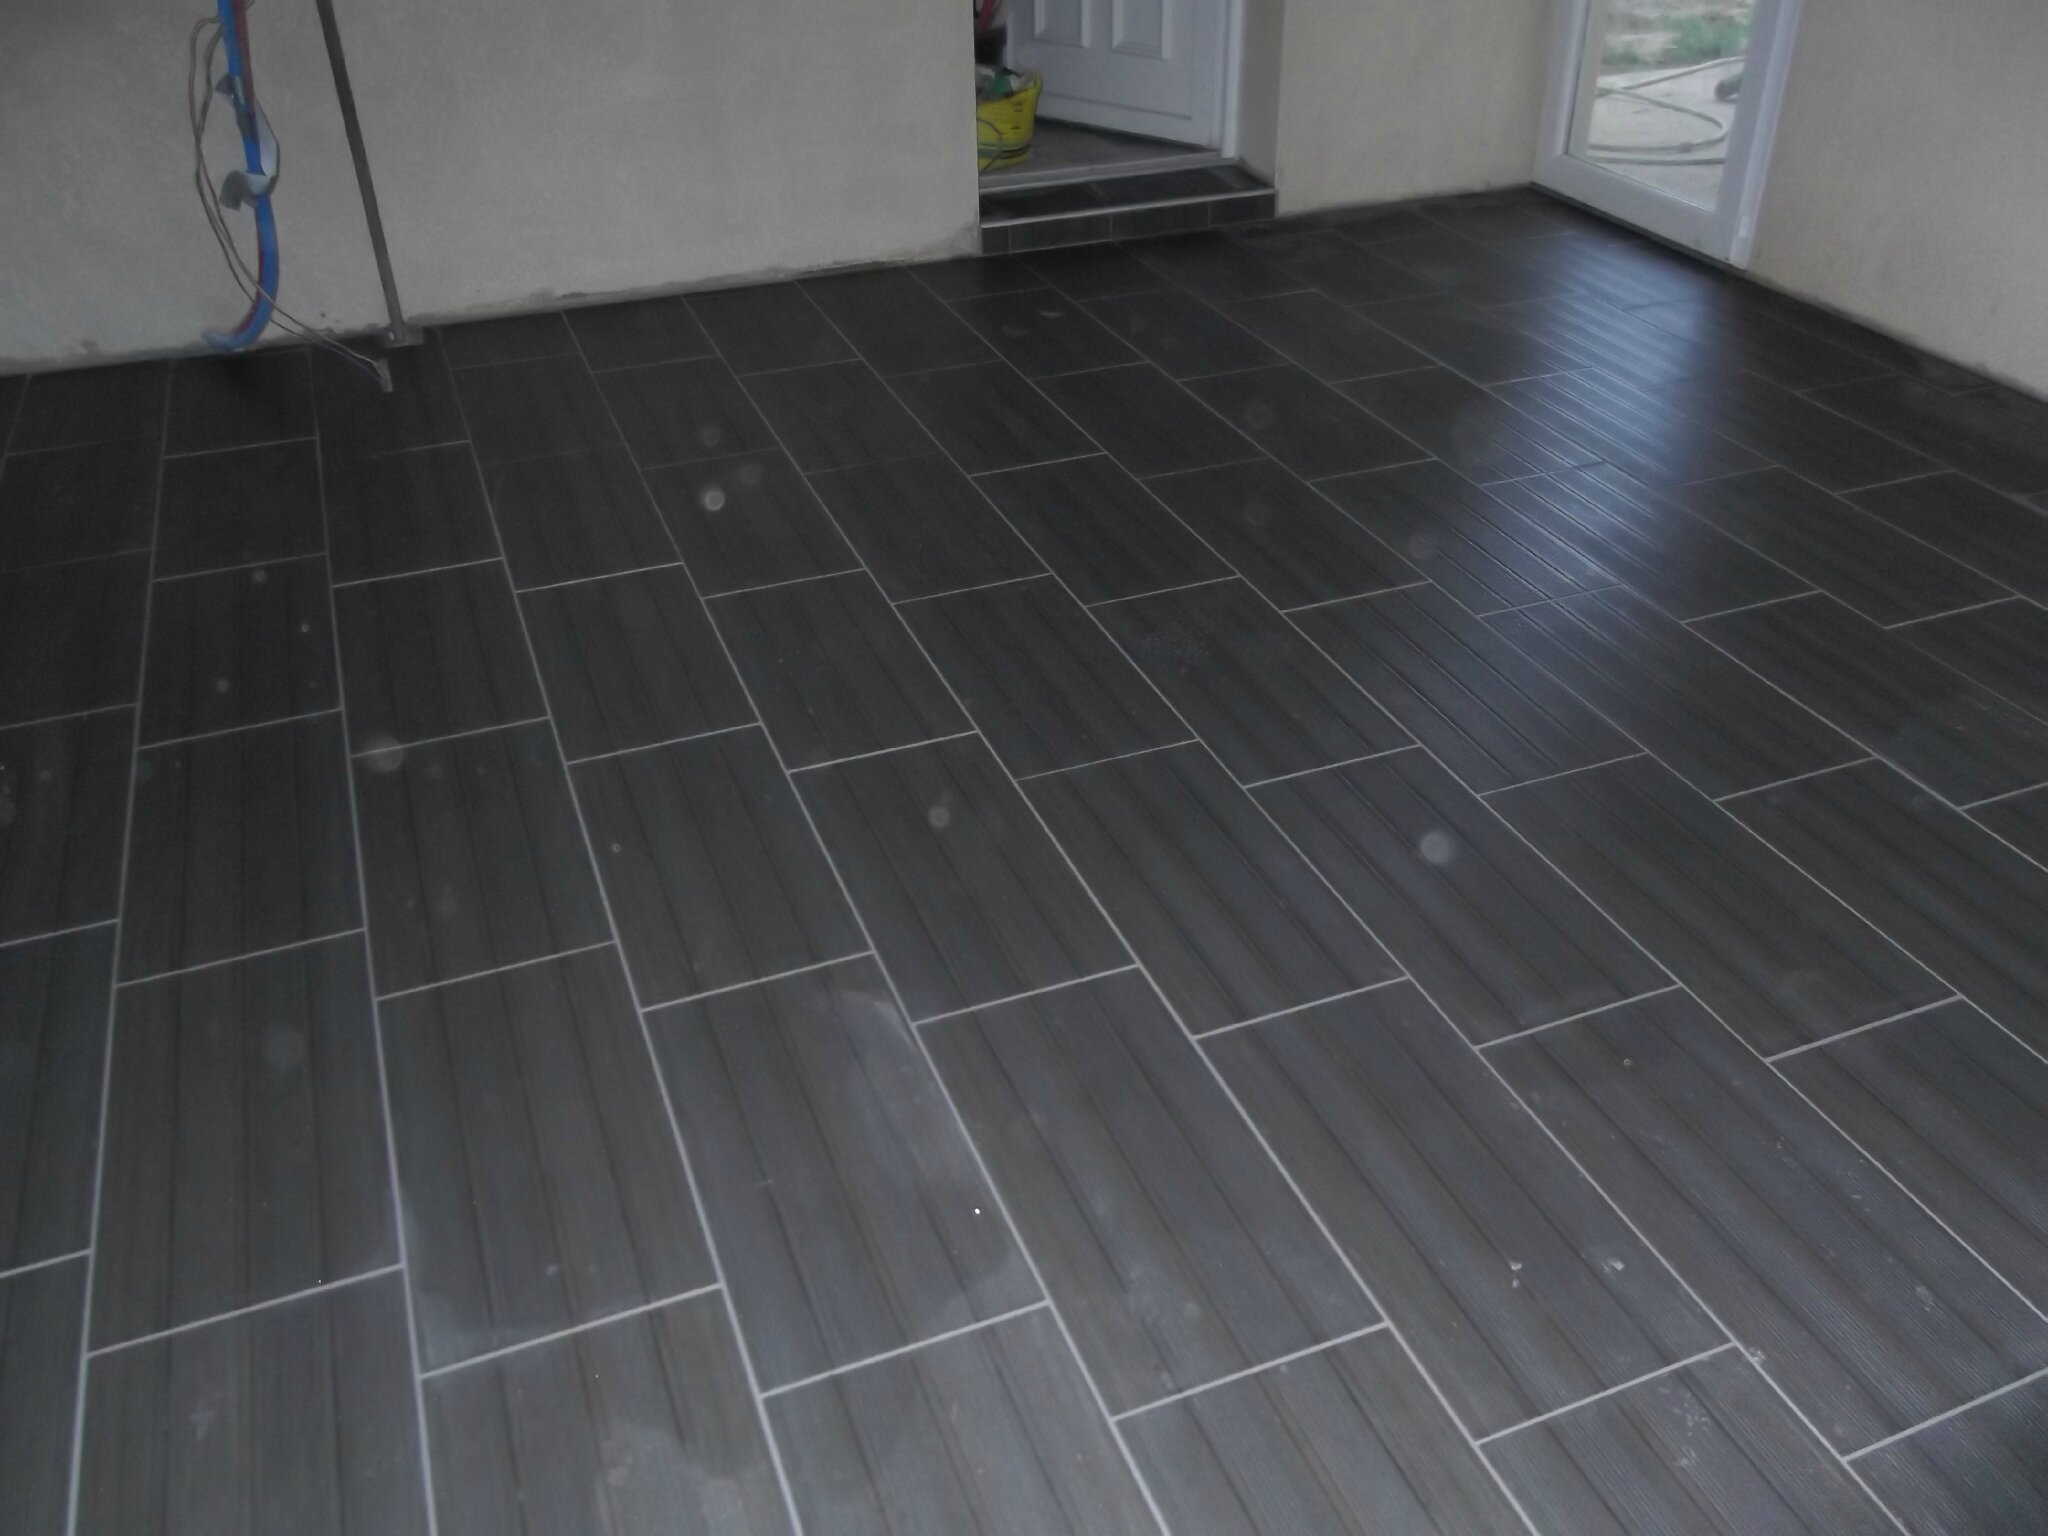 Couleur salon carrelage gris travaux renovation orleans for Carrelage couleur